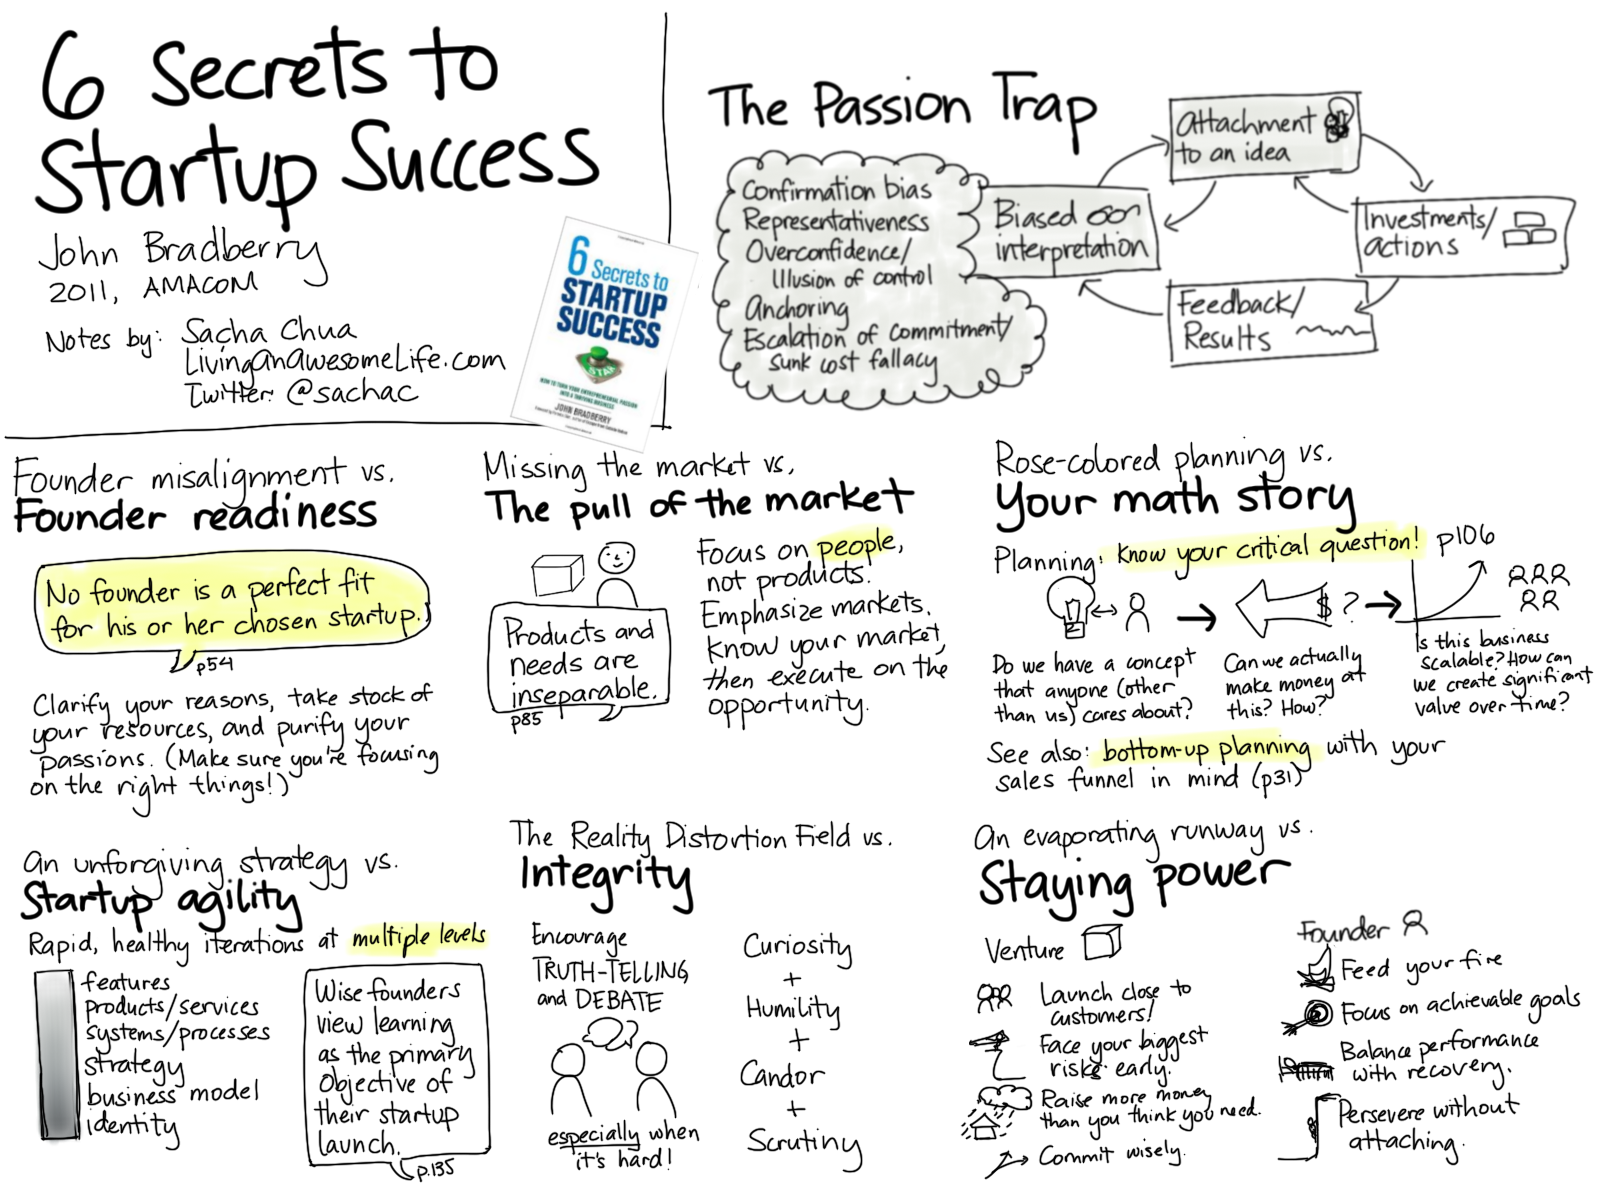 🙌⚡🔥👏 6 secrets to #startup success from @JohnBradberry's book. Notes by @Sachac https://t.co/hmcoUPsJZ4